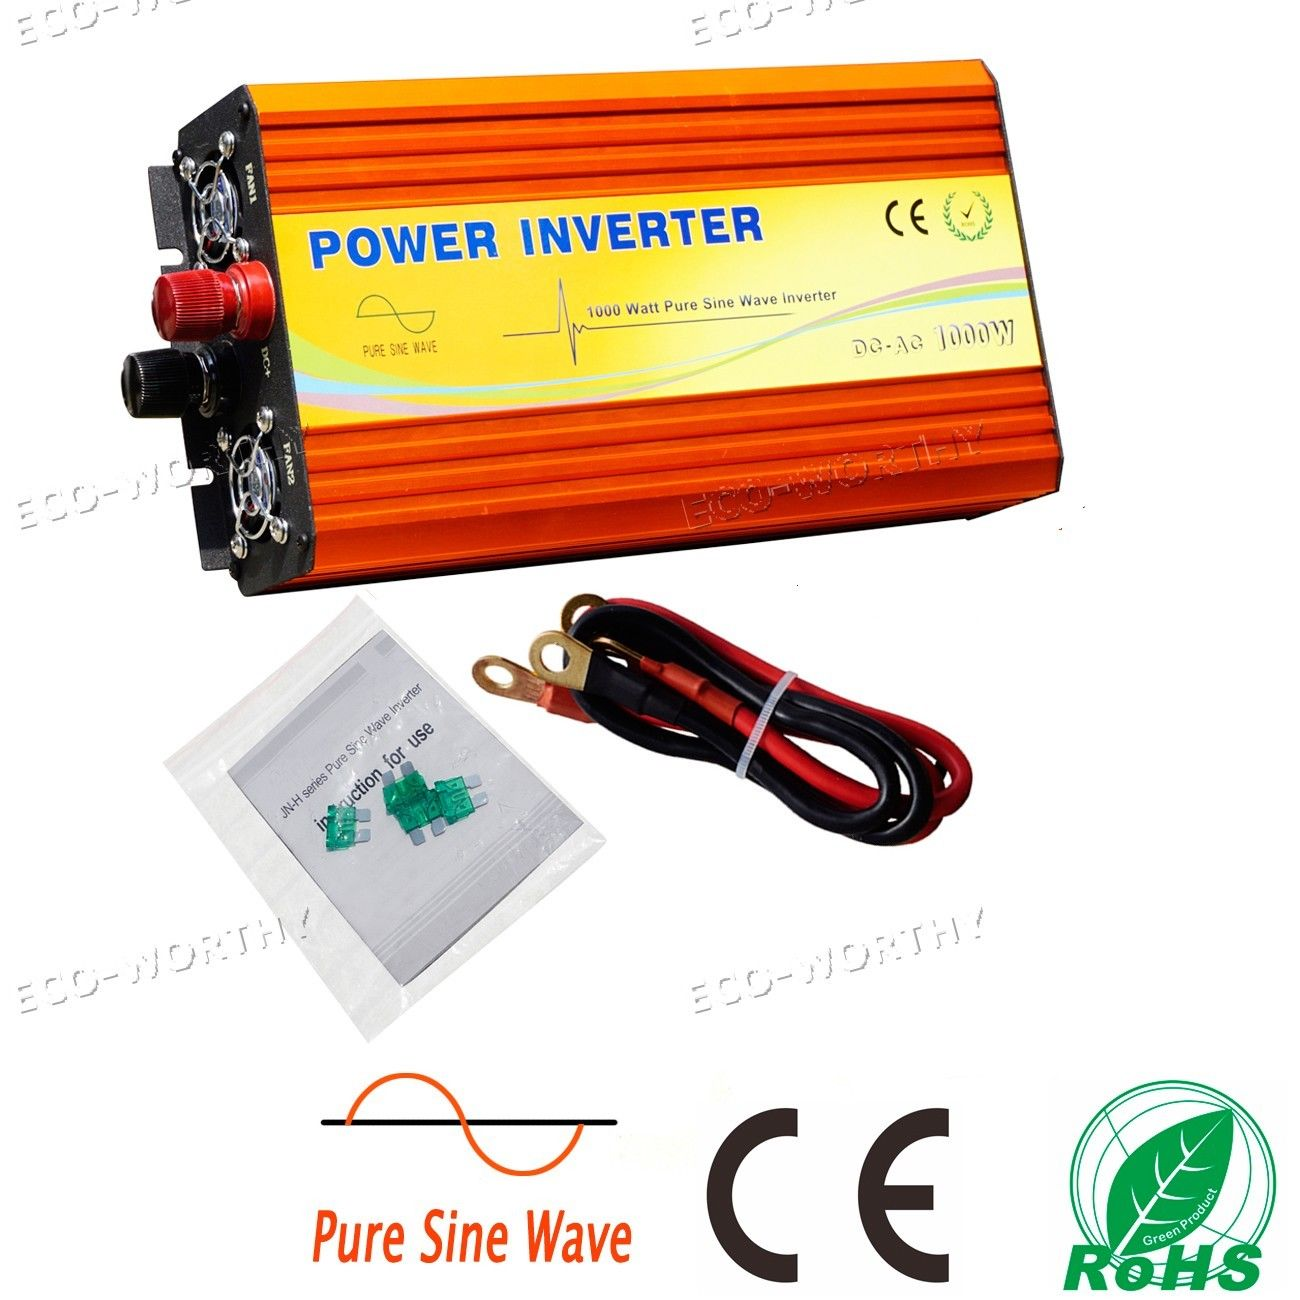 Ultra-high Performance 1KW Pure Sine Wave Off Grid Inverter 24V DC to 220V AC cxa l0612 vjl cxa l0612a vjl vml cxa l0612a vsl high pressure plate inverter